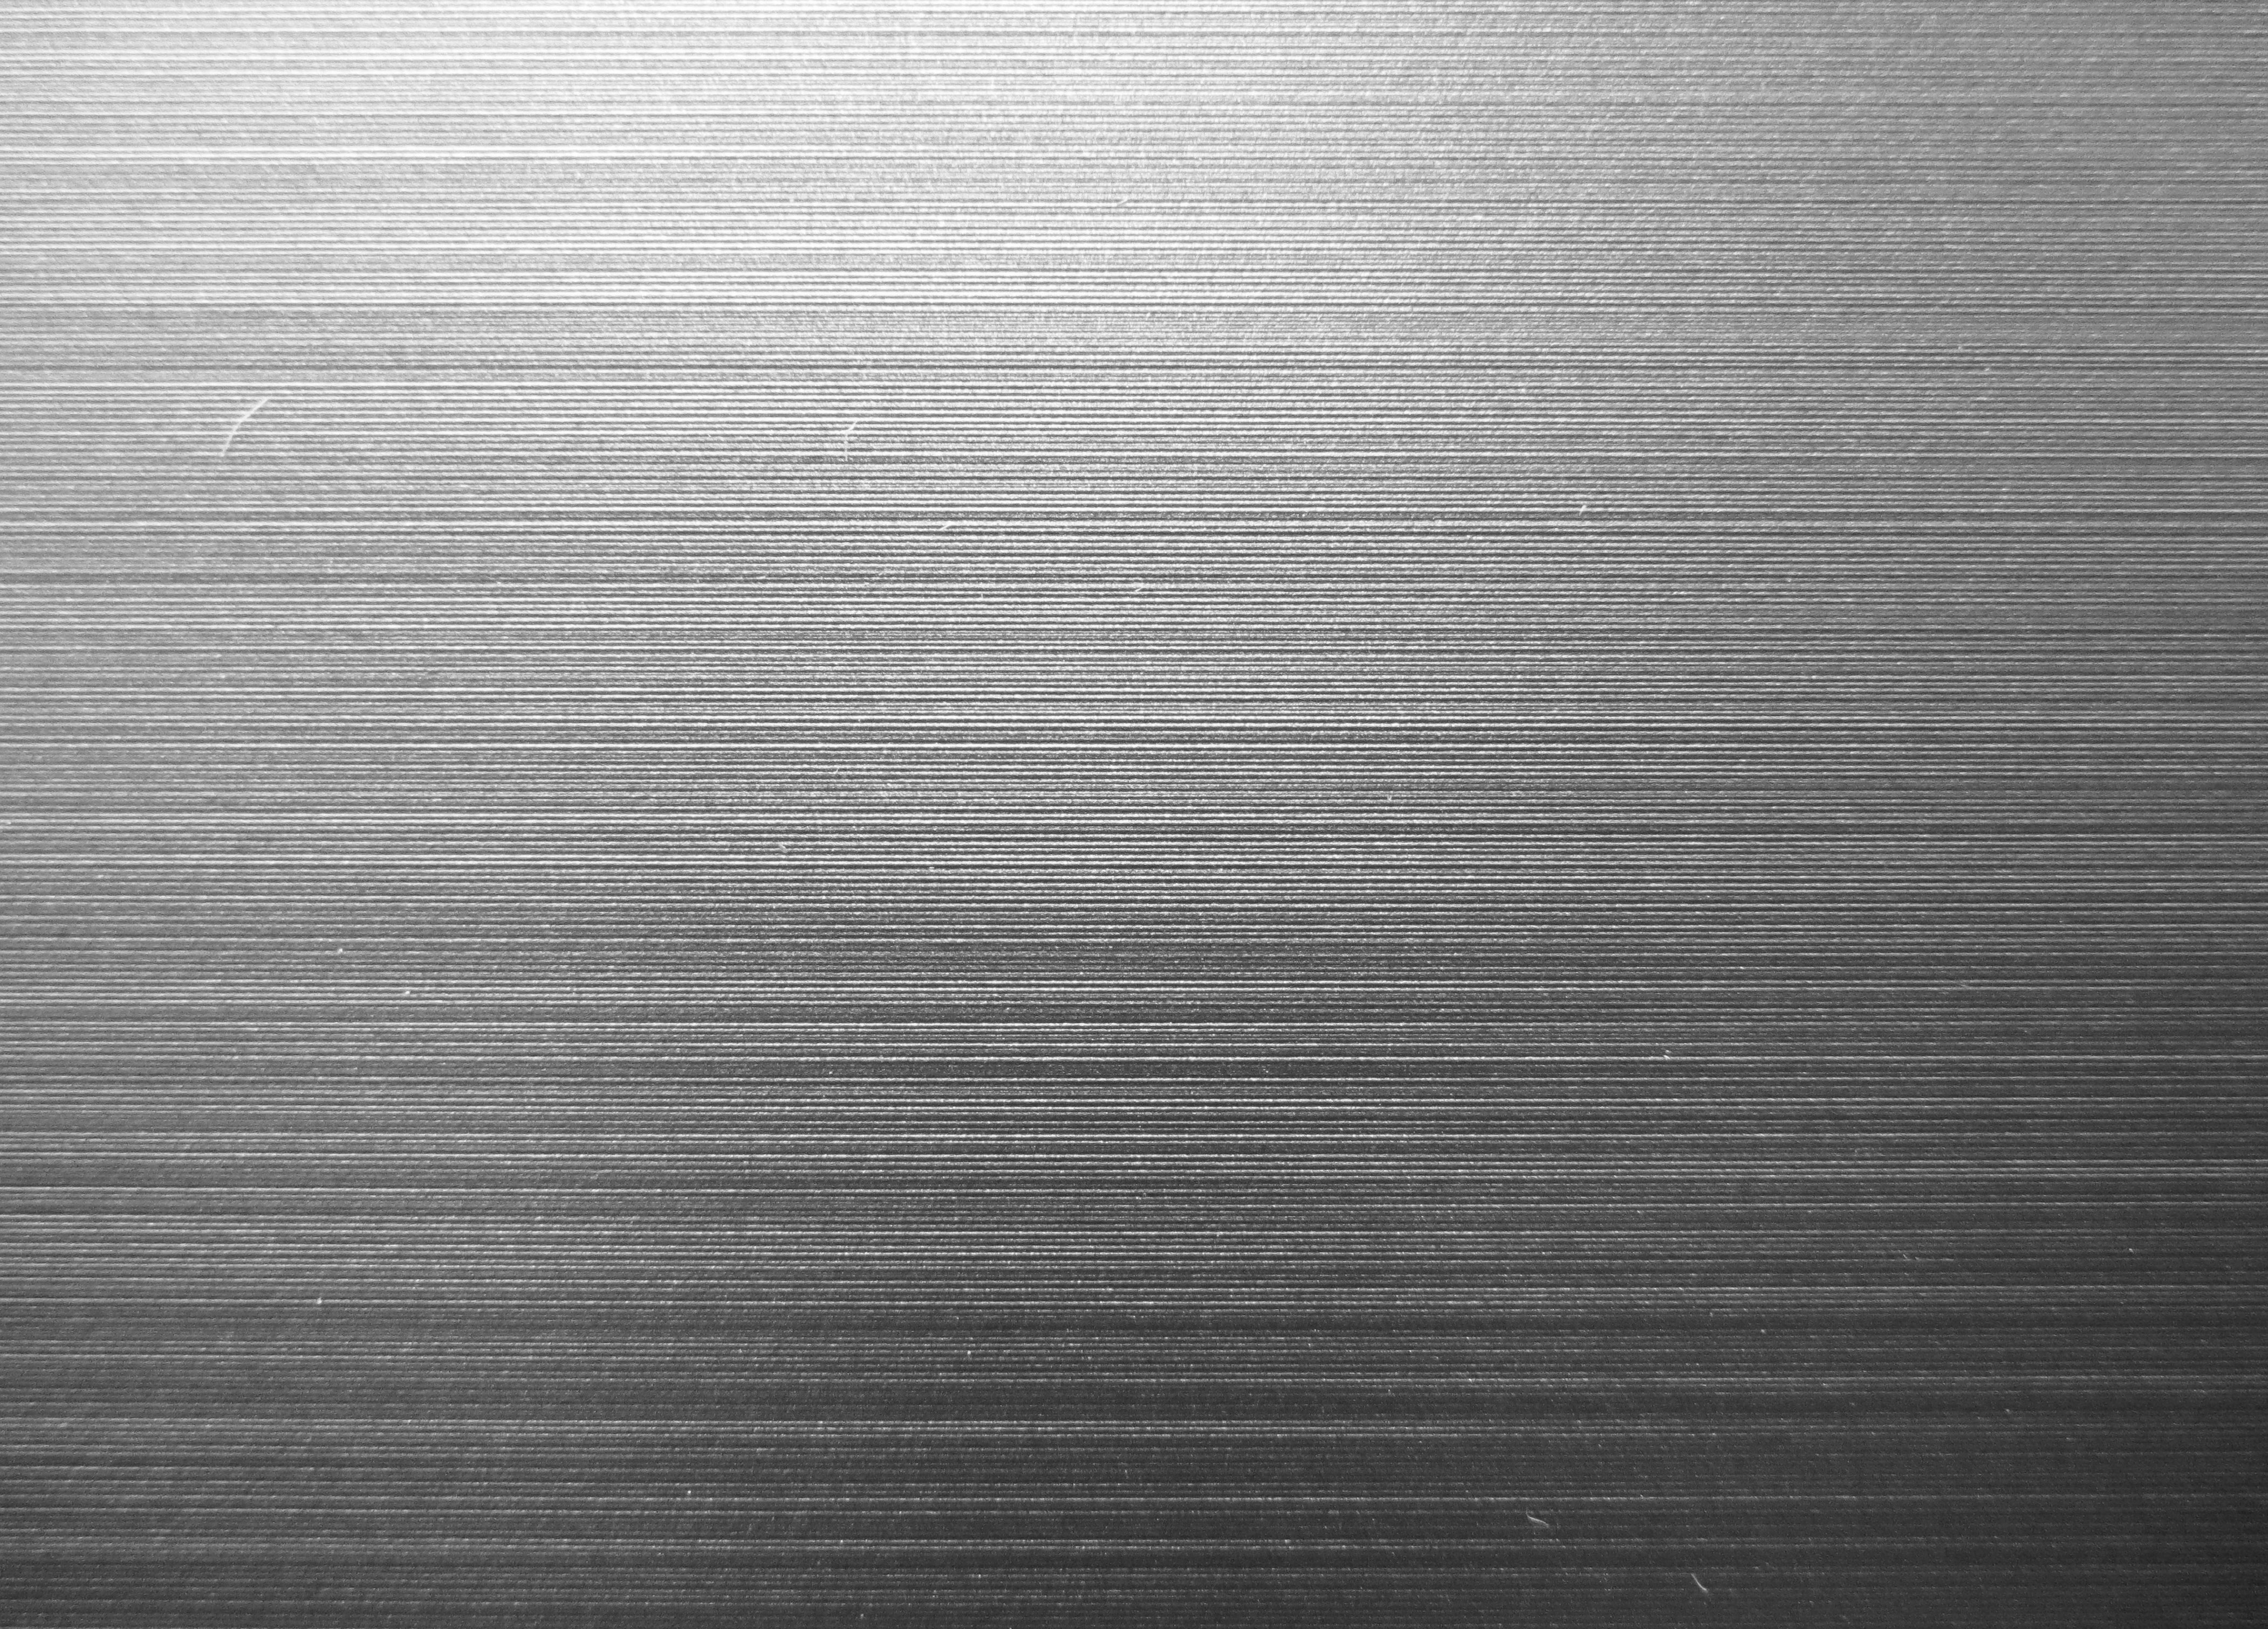 Images of Metal | 4205x3020